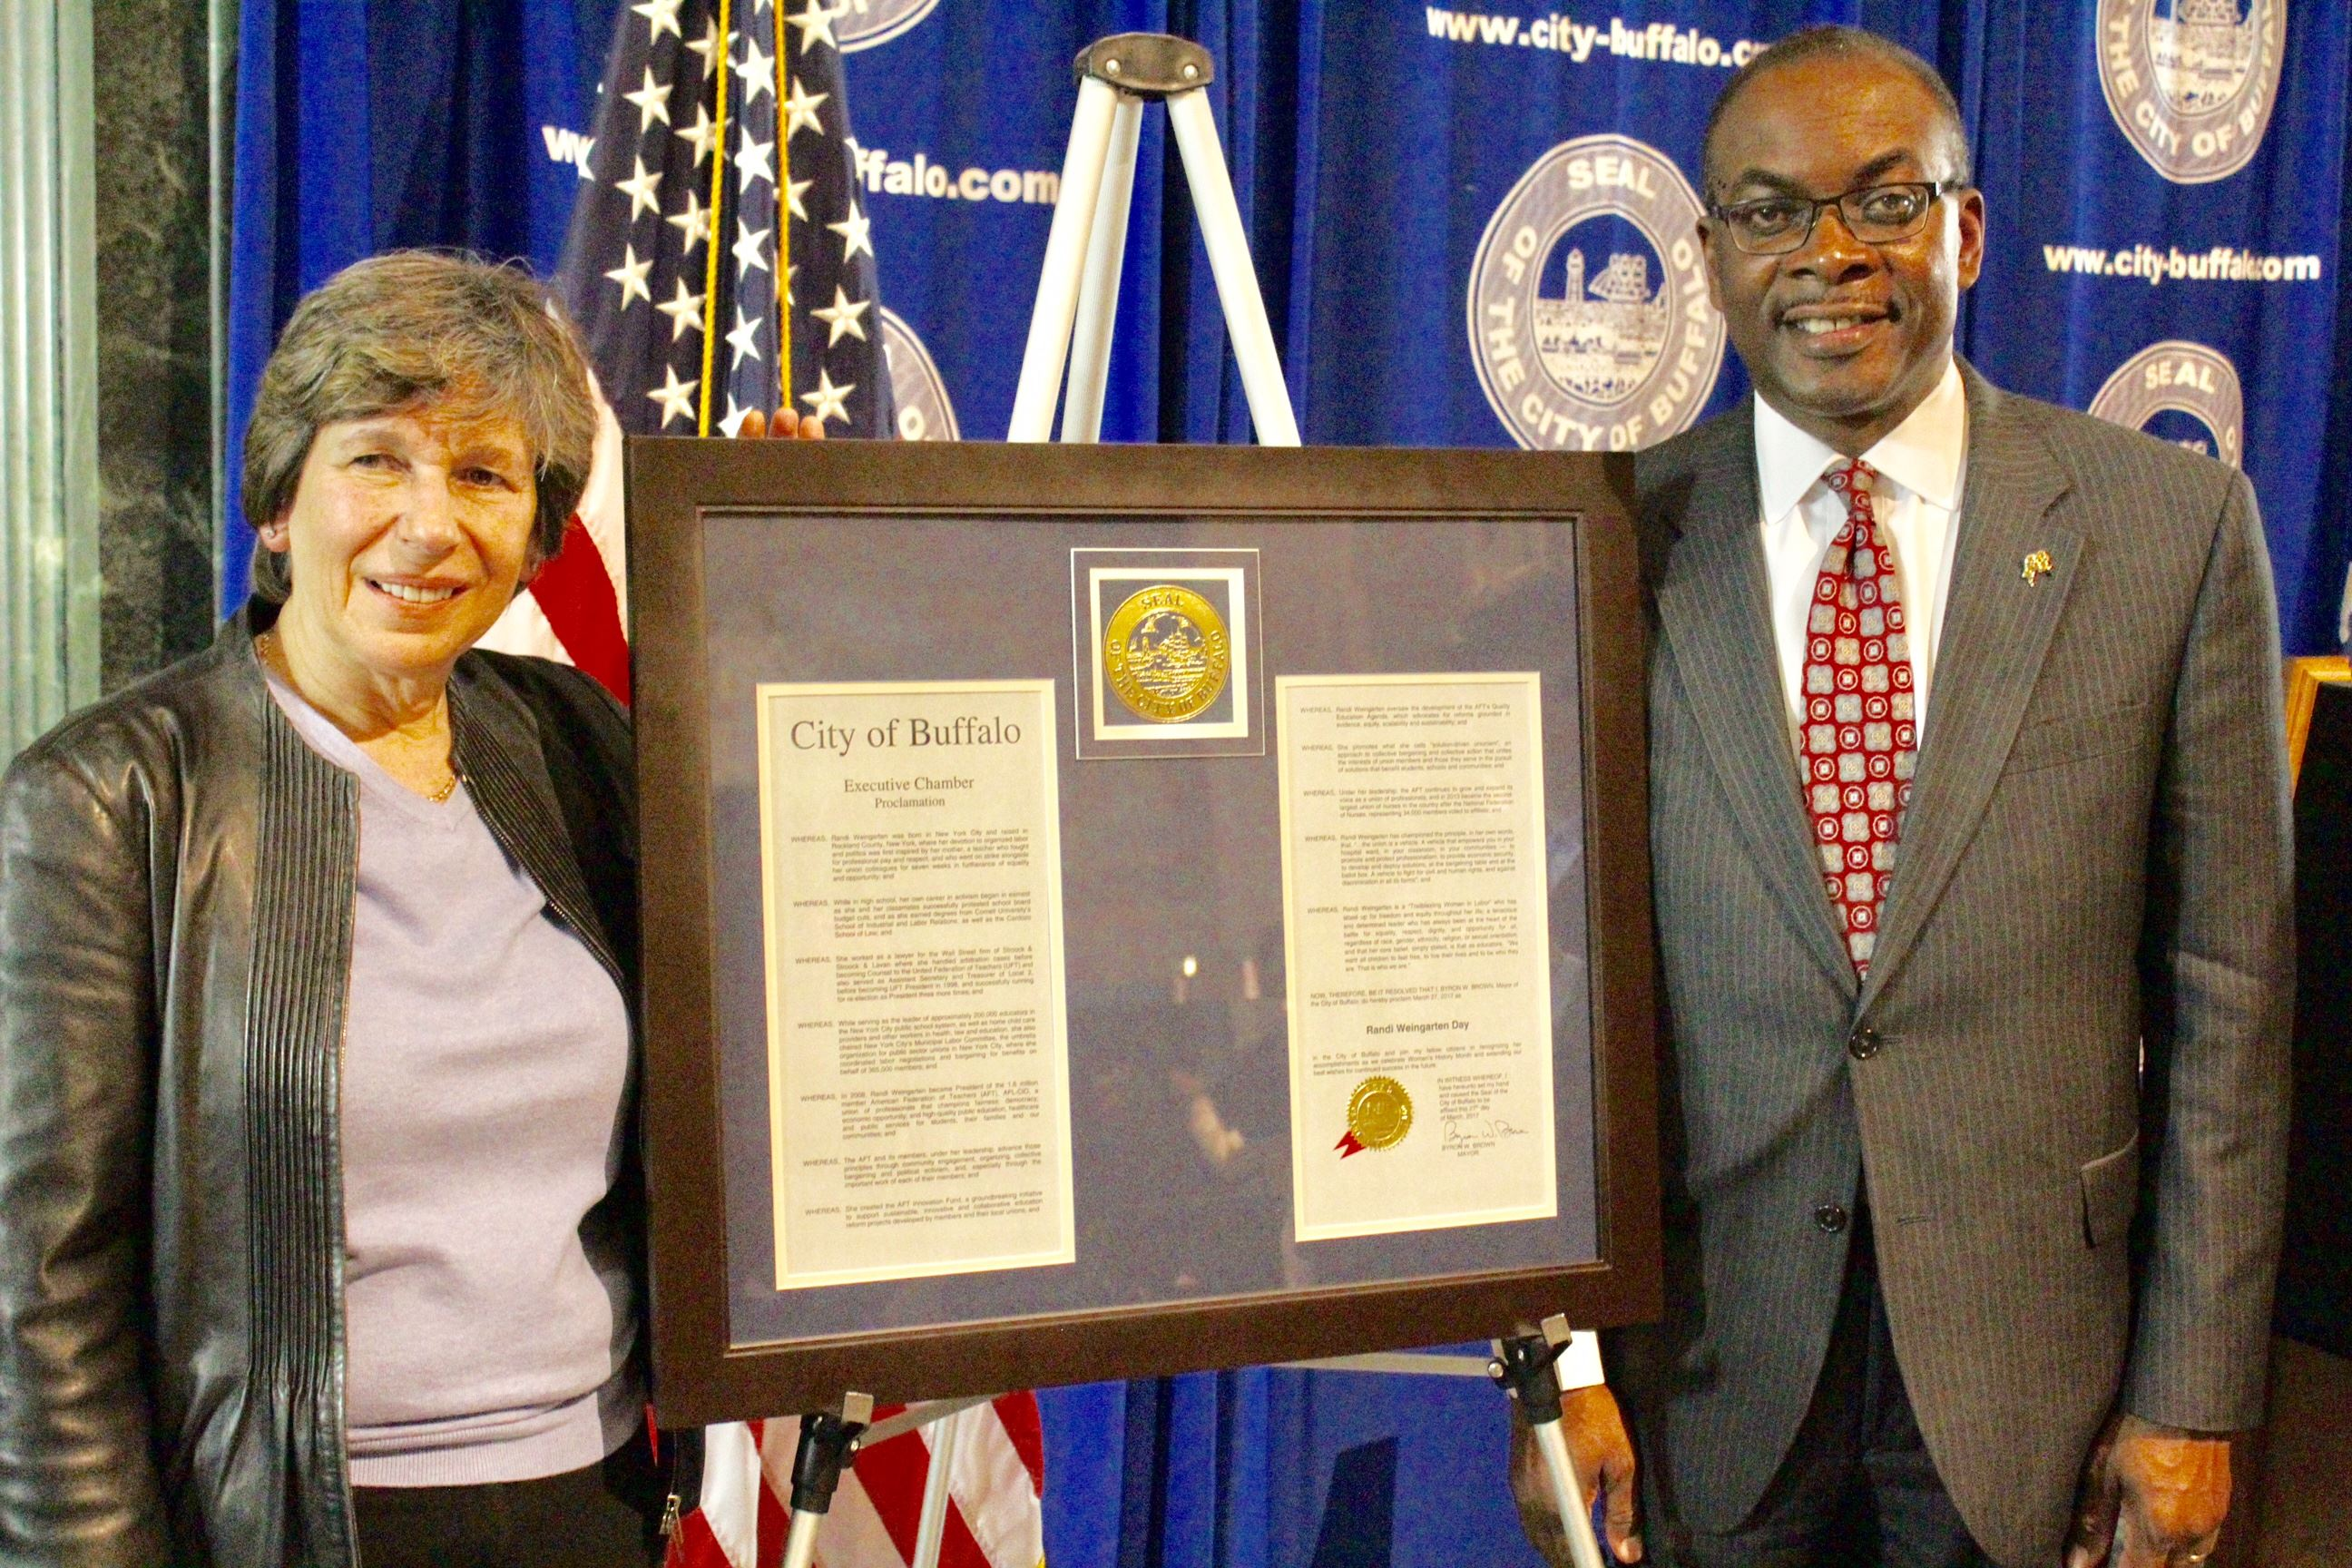 Mayor Brown Recognizes Randi Weingarten as he Concludes Woman&#39s History Month